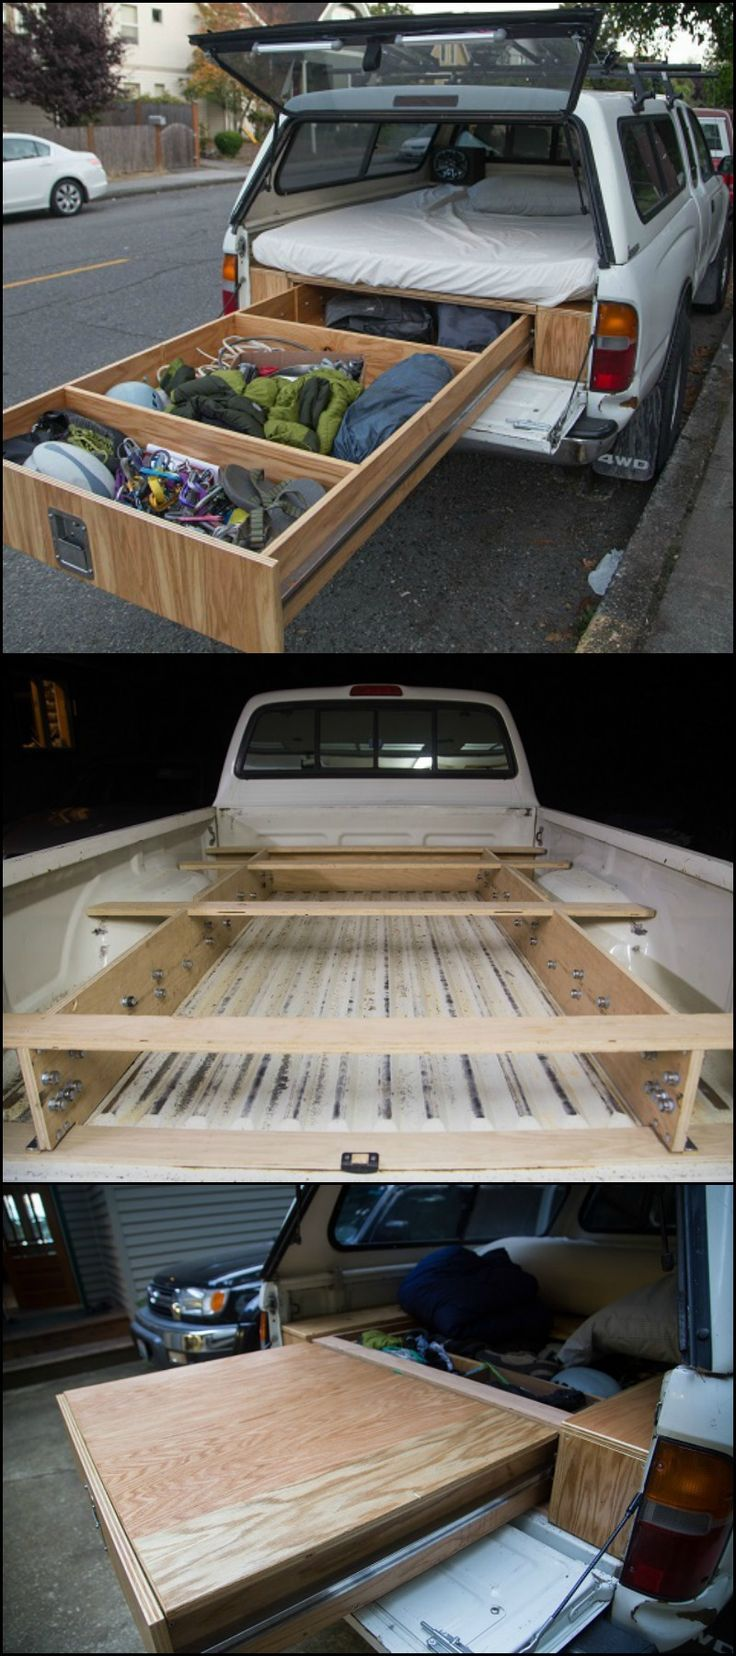 Do you always go on a roadtrip using your truck this upgrade idea for your